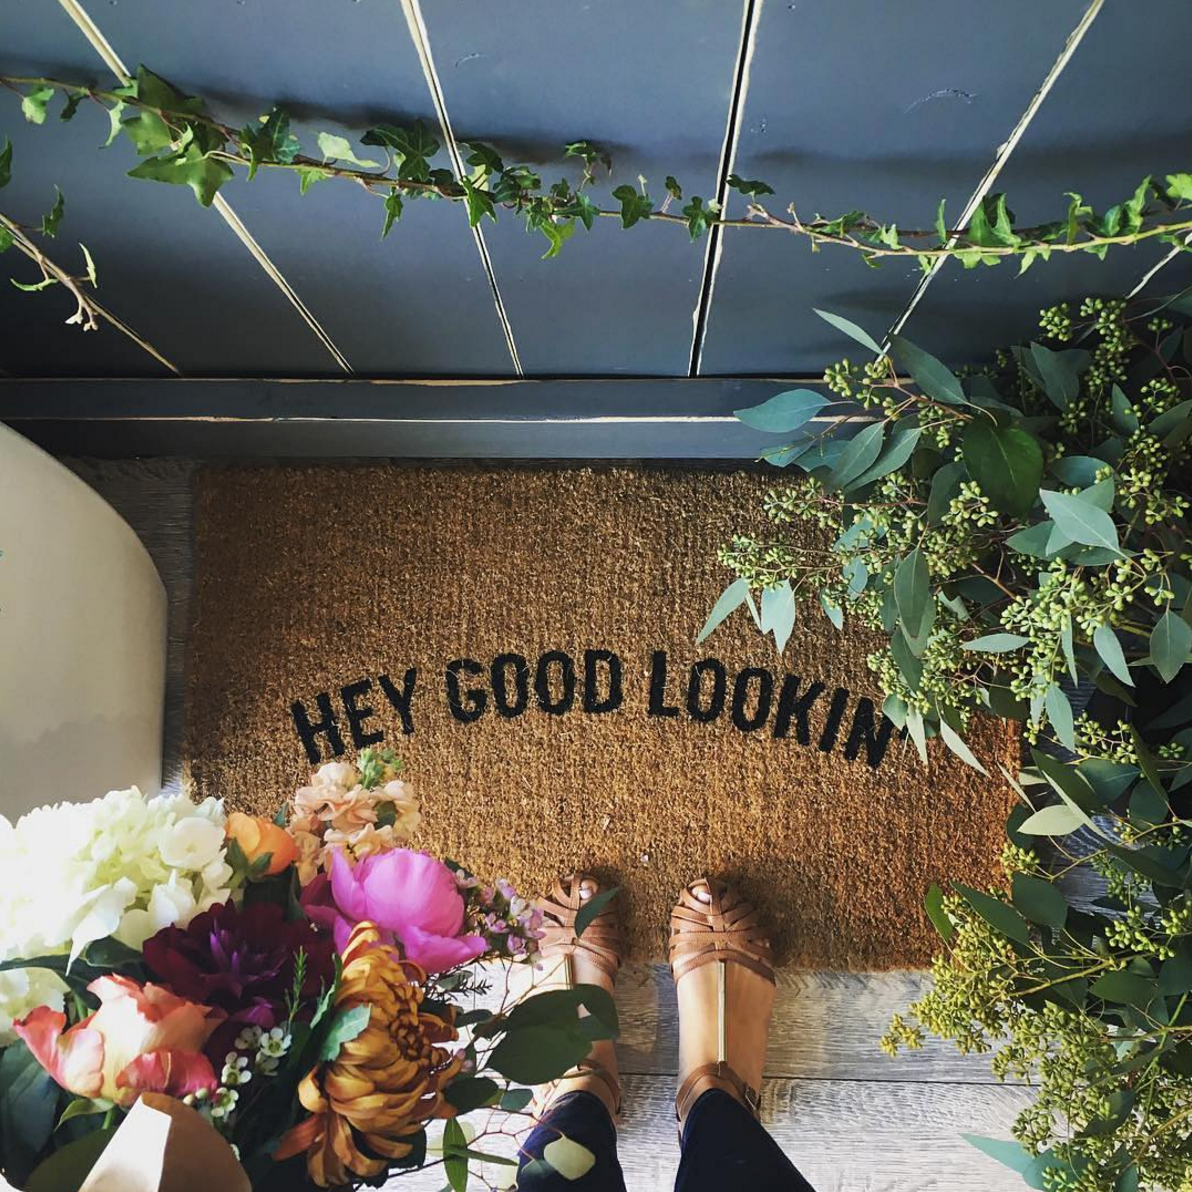 Where to find the cutest doormats ever hey good lookin doormat where to find the cutest doormats ever hey good lookin doormat click through for izmirmasajfo